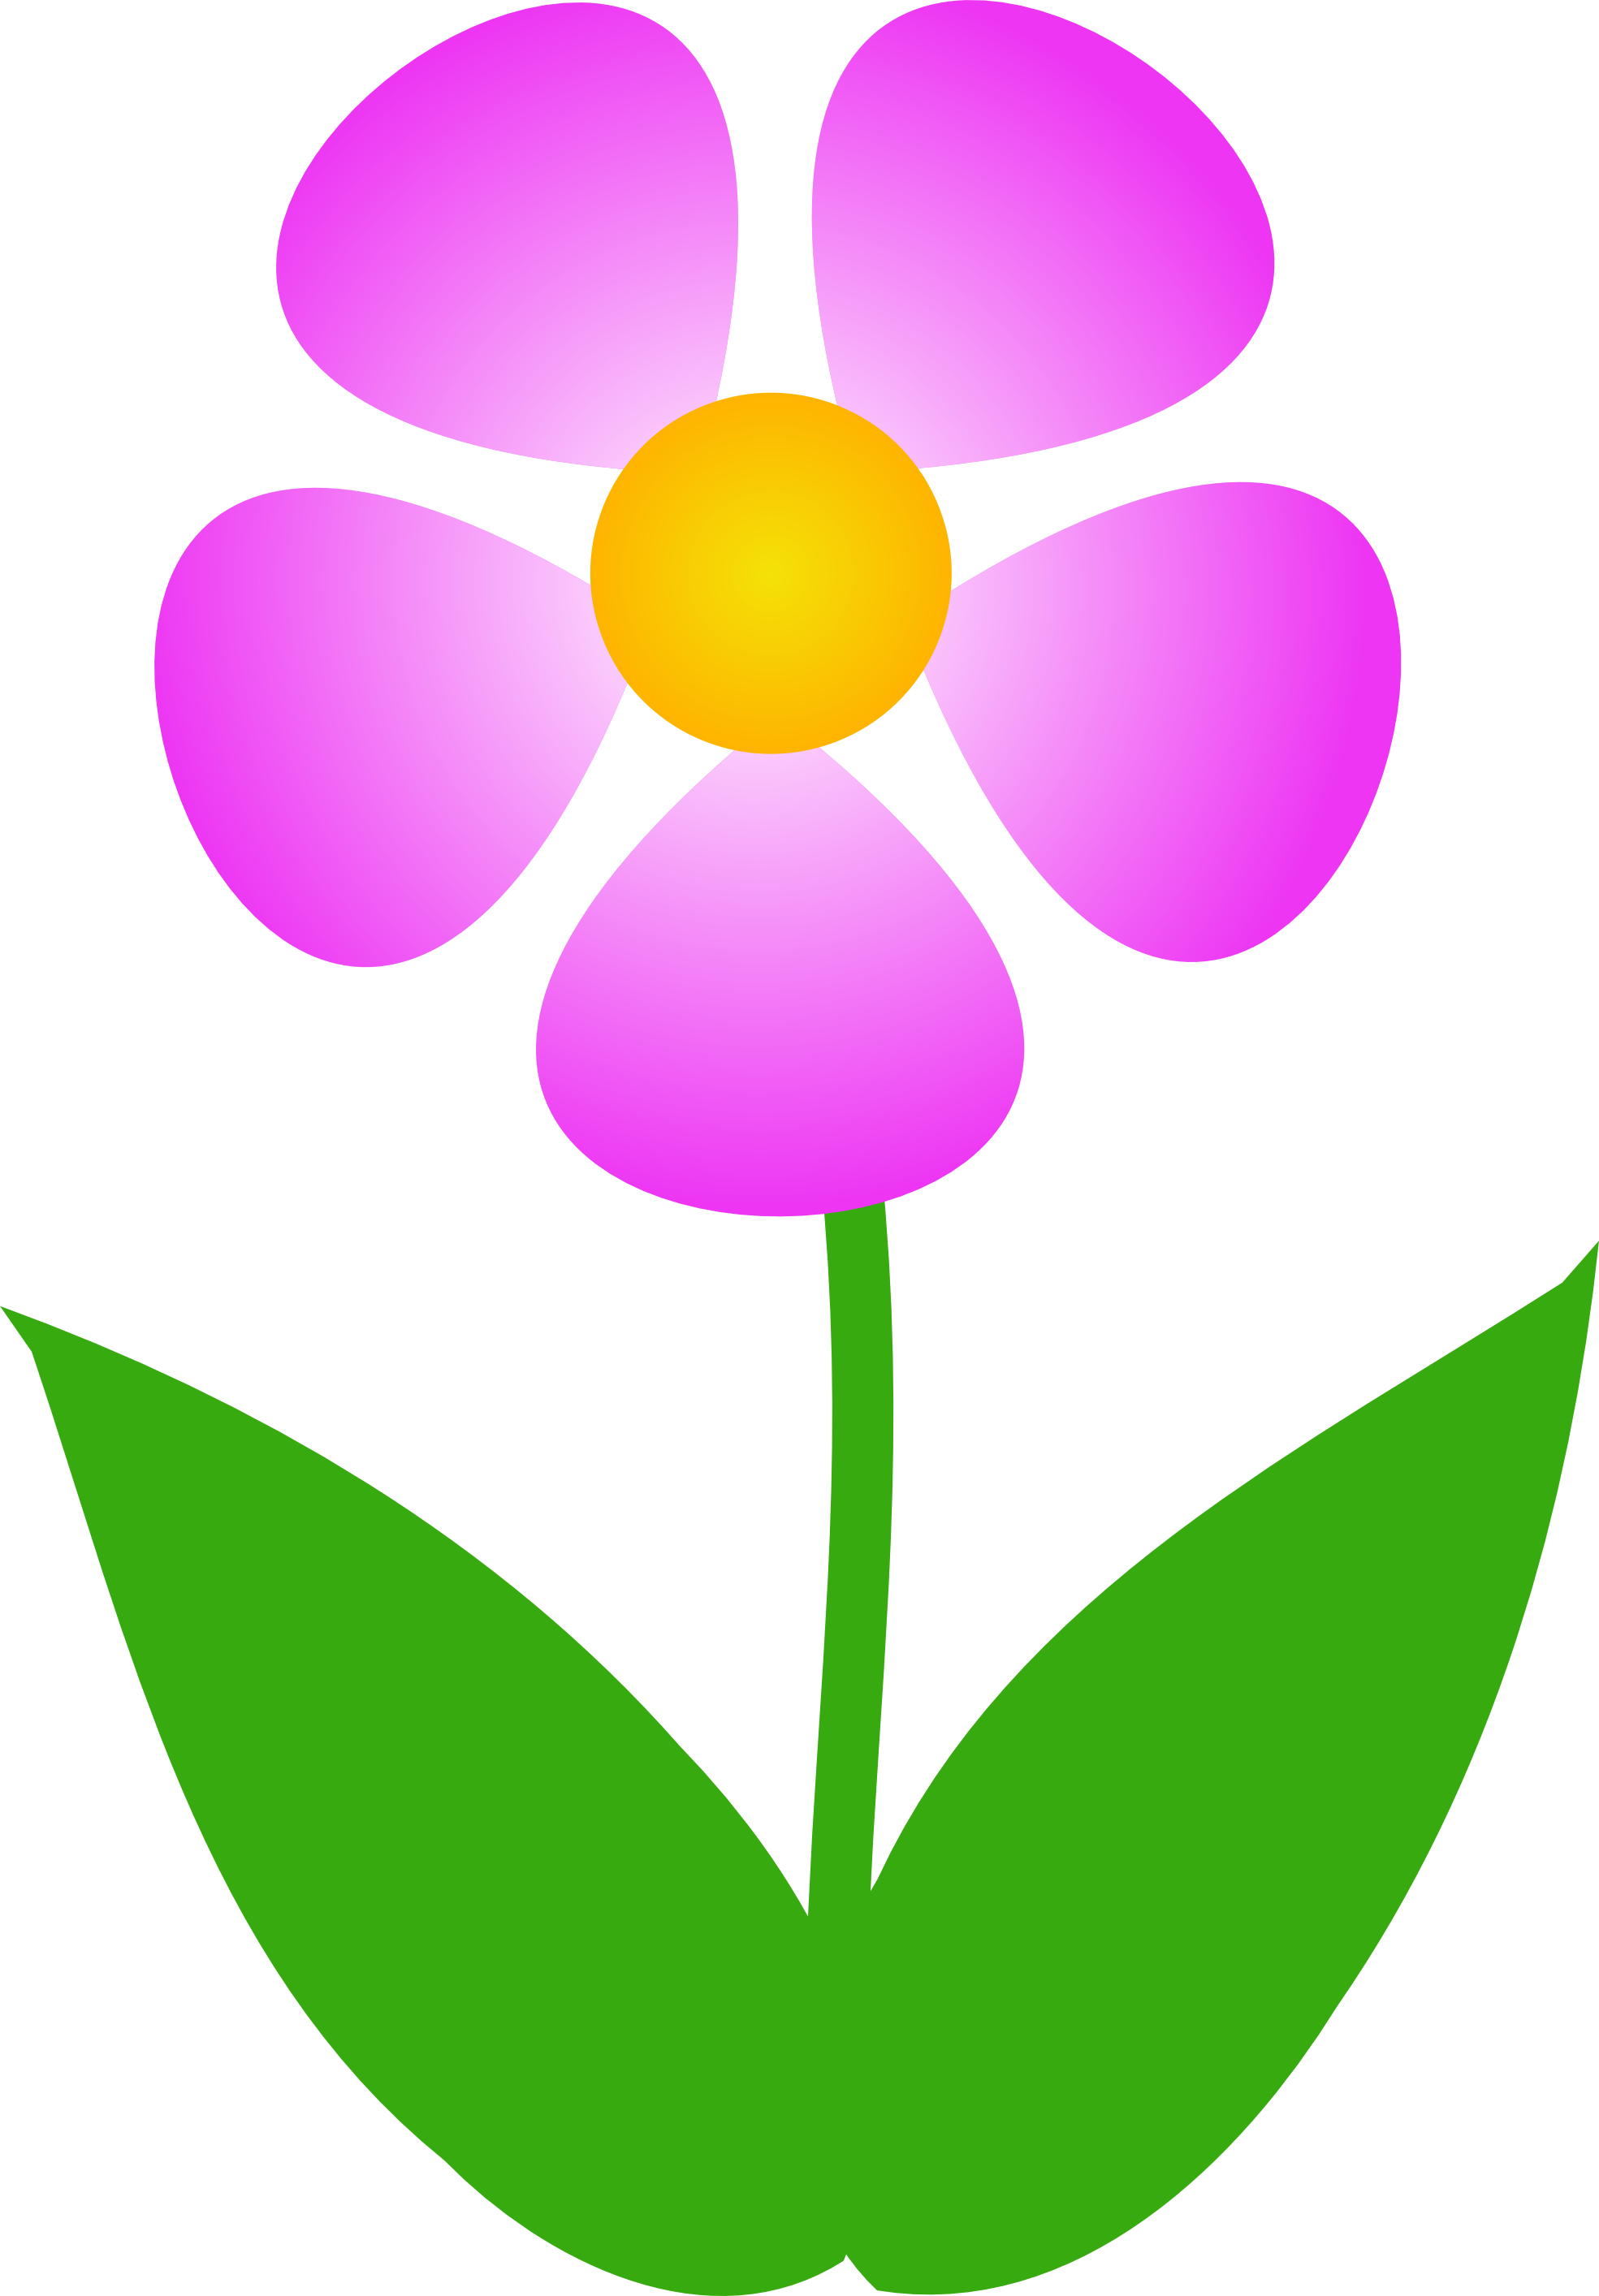 Free clipart images of flower - Flower Clipart Images